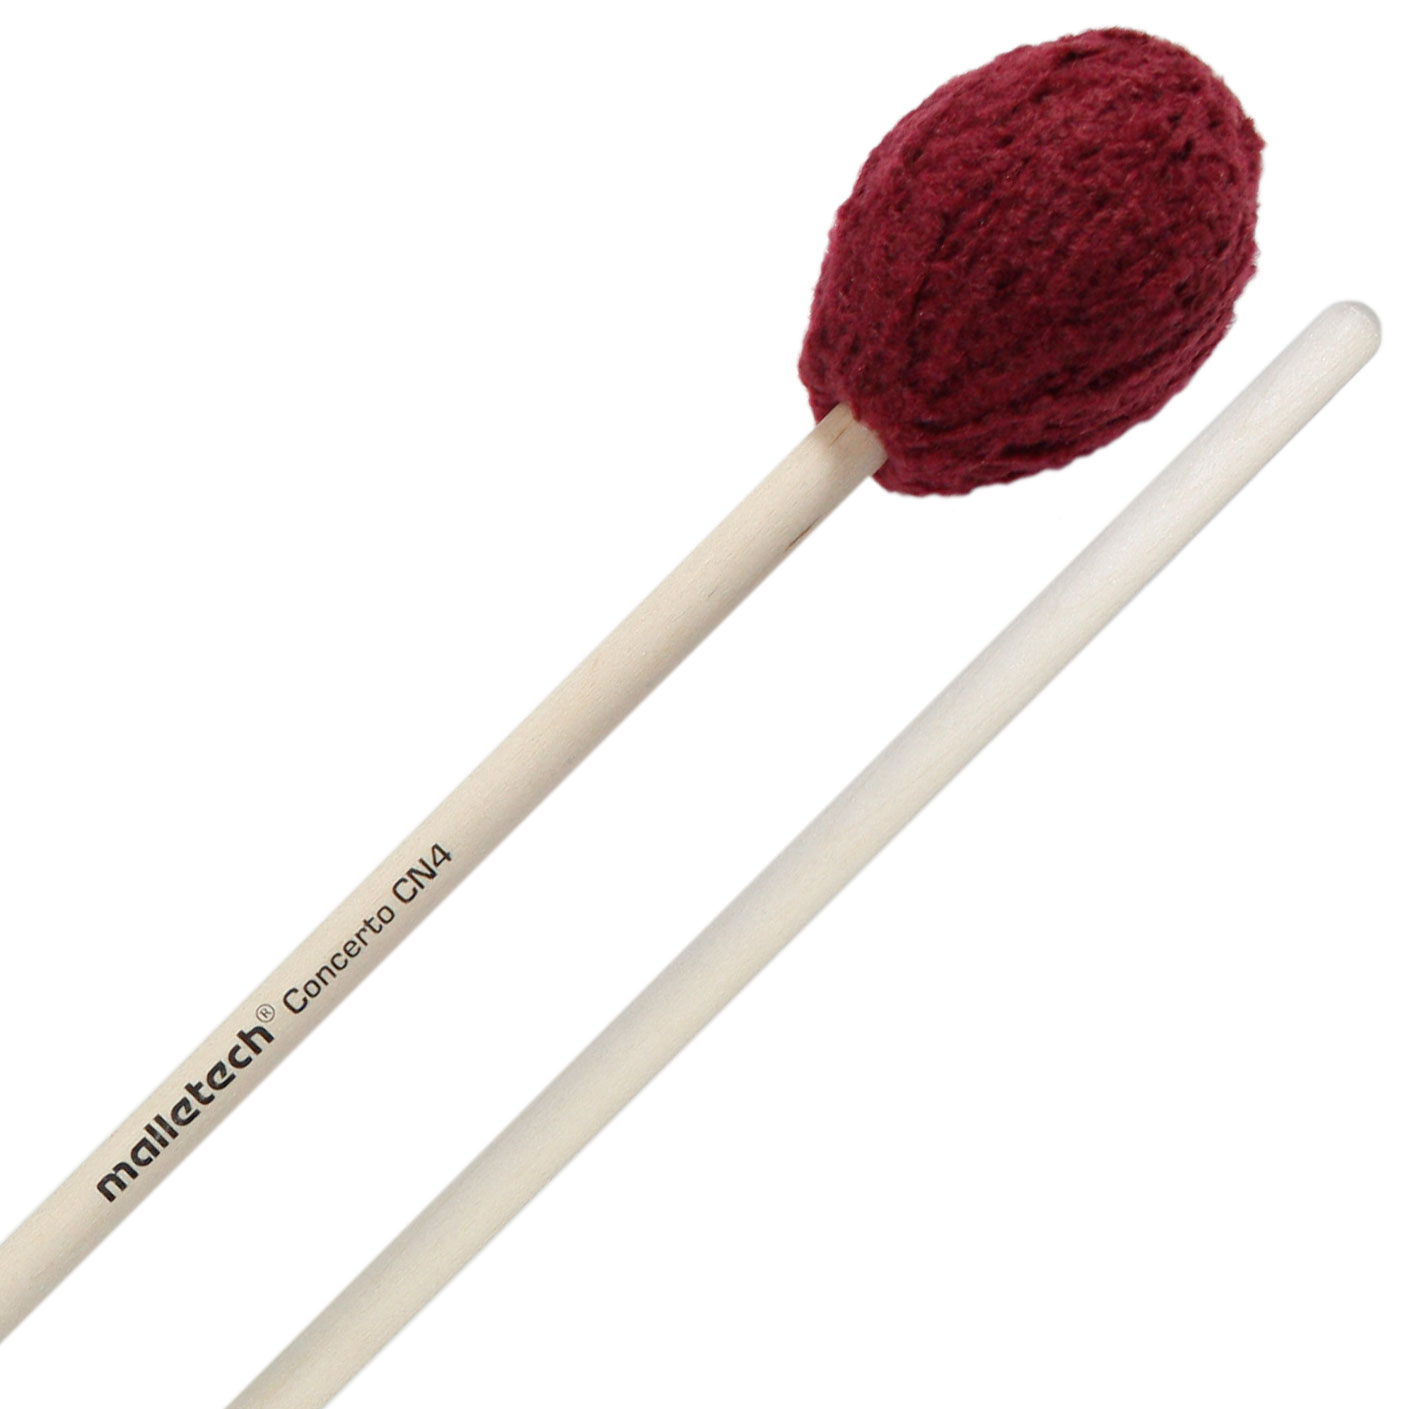 Malletech Concerto Series Soft Marimba Mallets with Birch Handles